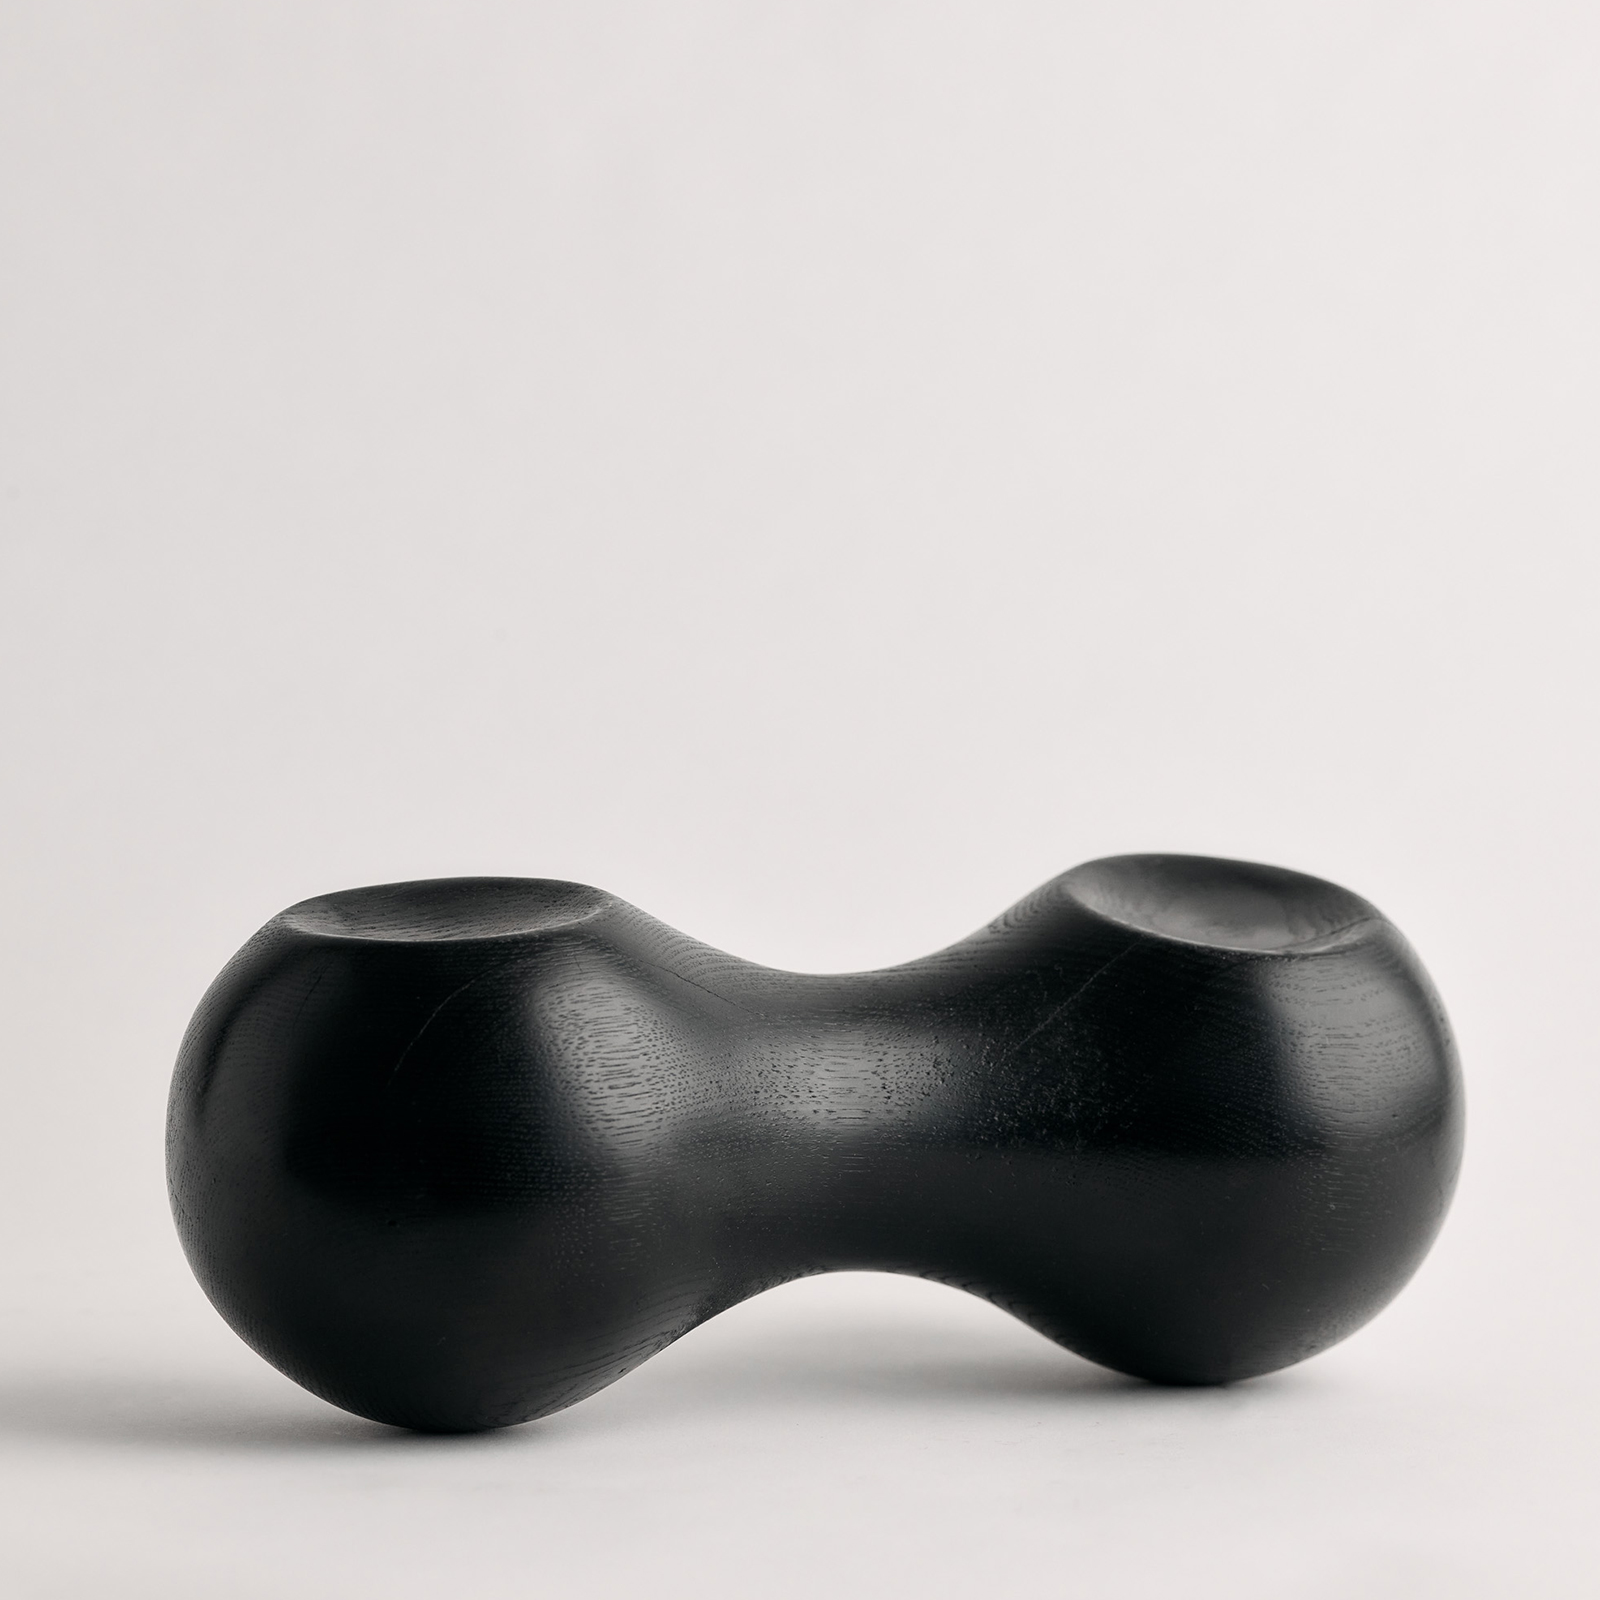 Black Bean Sculpture In Ebonized American Oak By Zachary Frankel 5